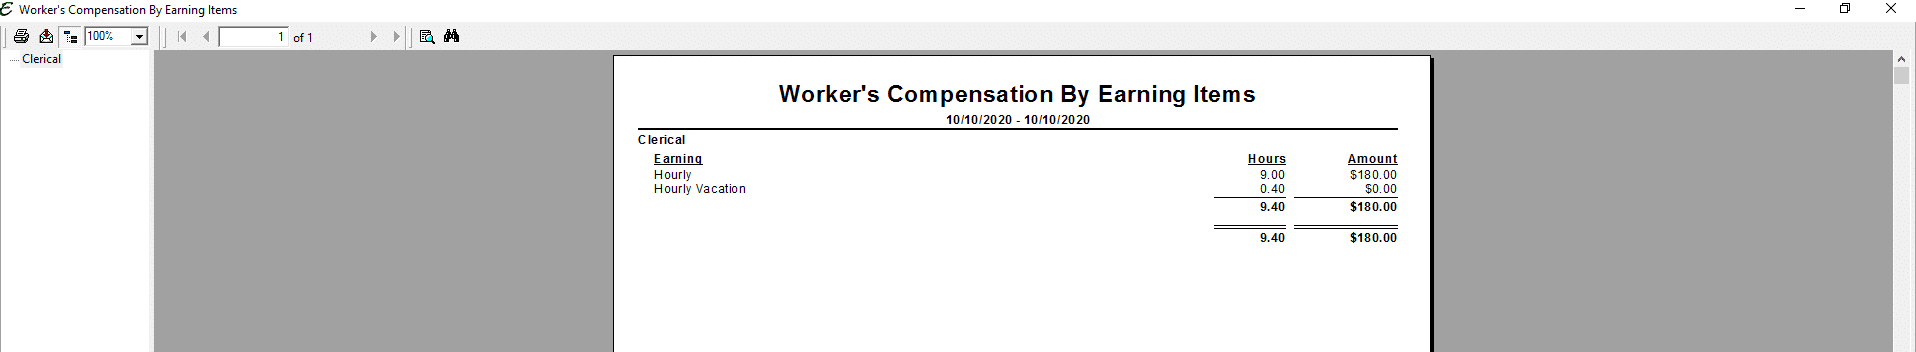 Worker's Compensation By Earning Items PDF